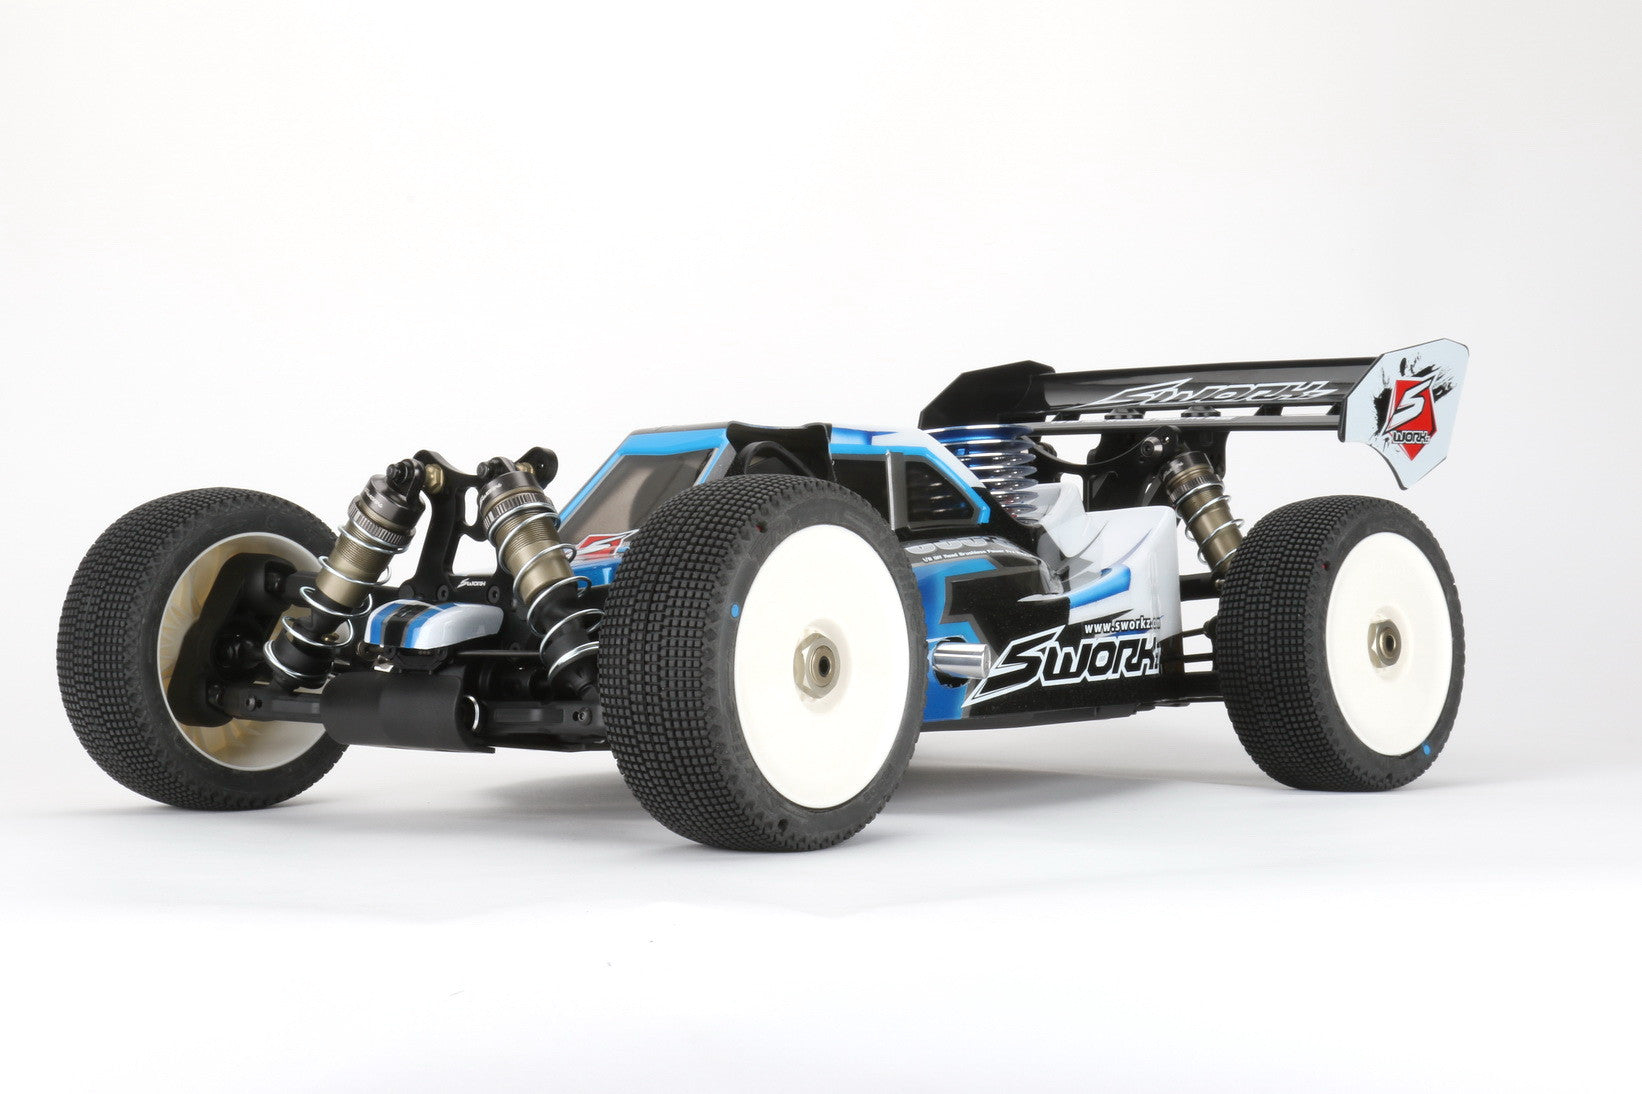 SWORKz S14-3 1/10 4WD EP Off Road Racing Buggy Pro Kit - Reds RC